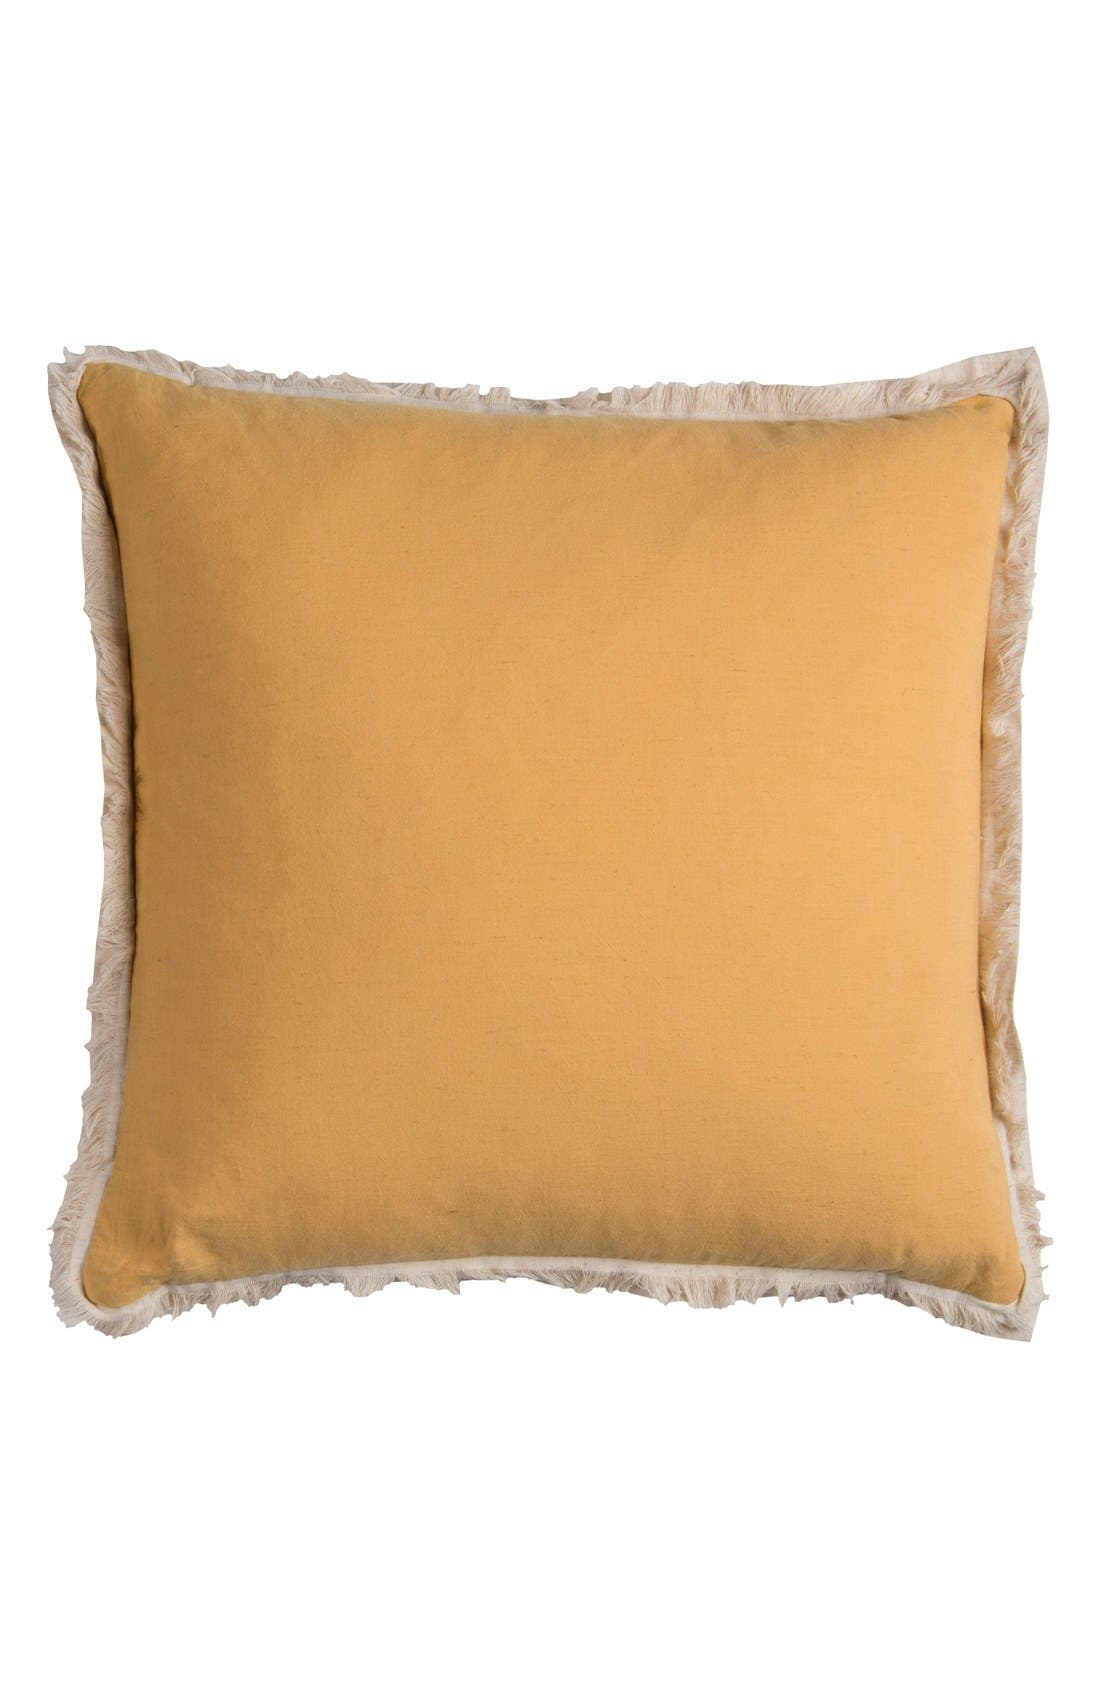 Rizzy Home Fringe Accent Pillow